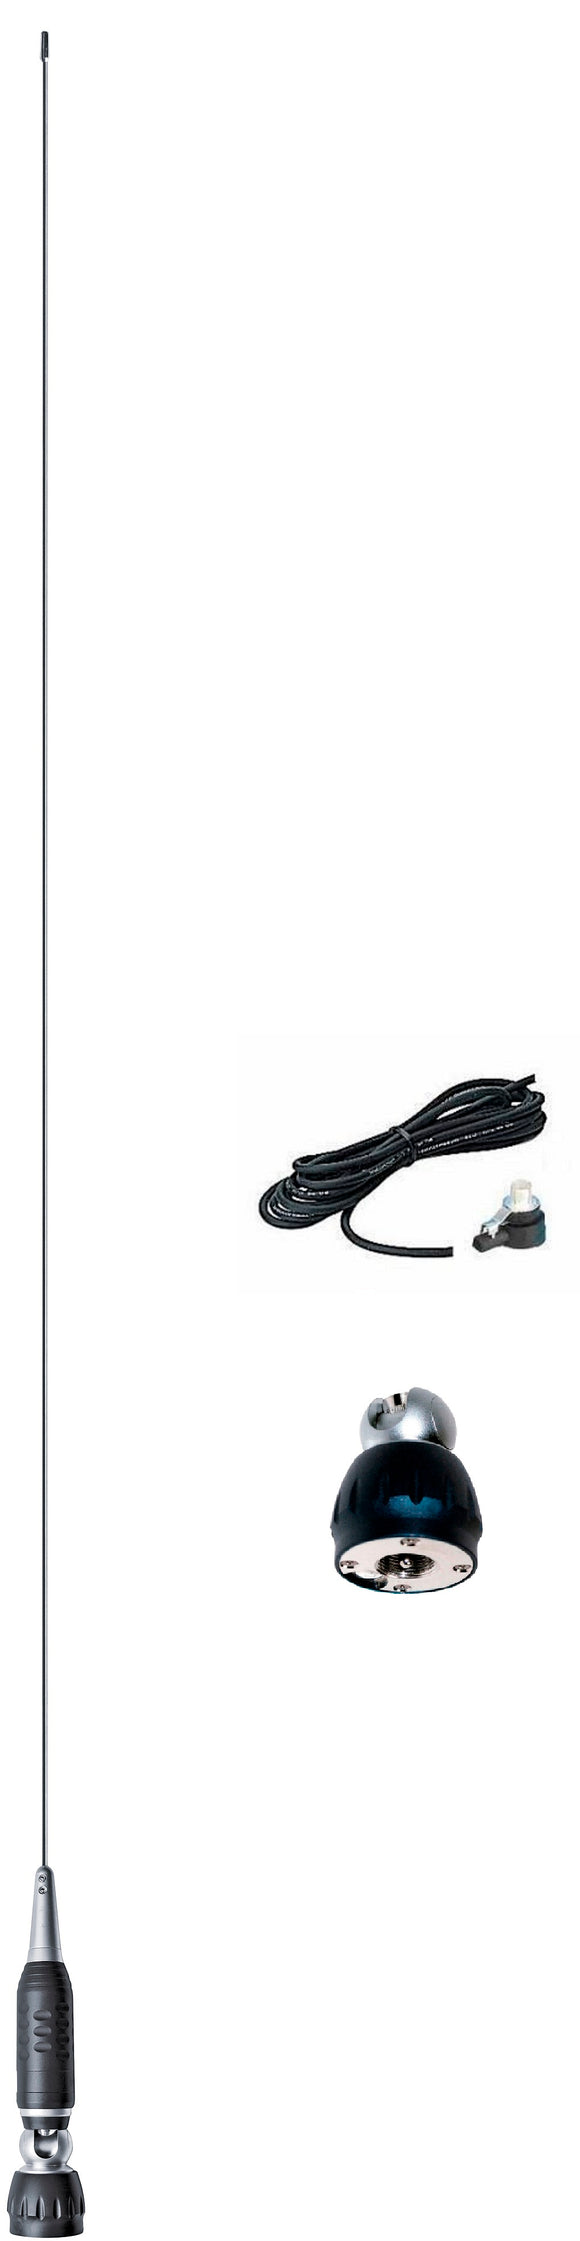 JETF Turbo 1000 antenna kit as Sirio Turbo 1000